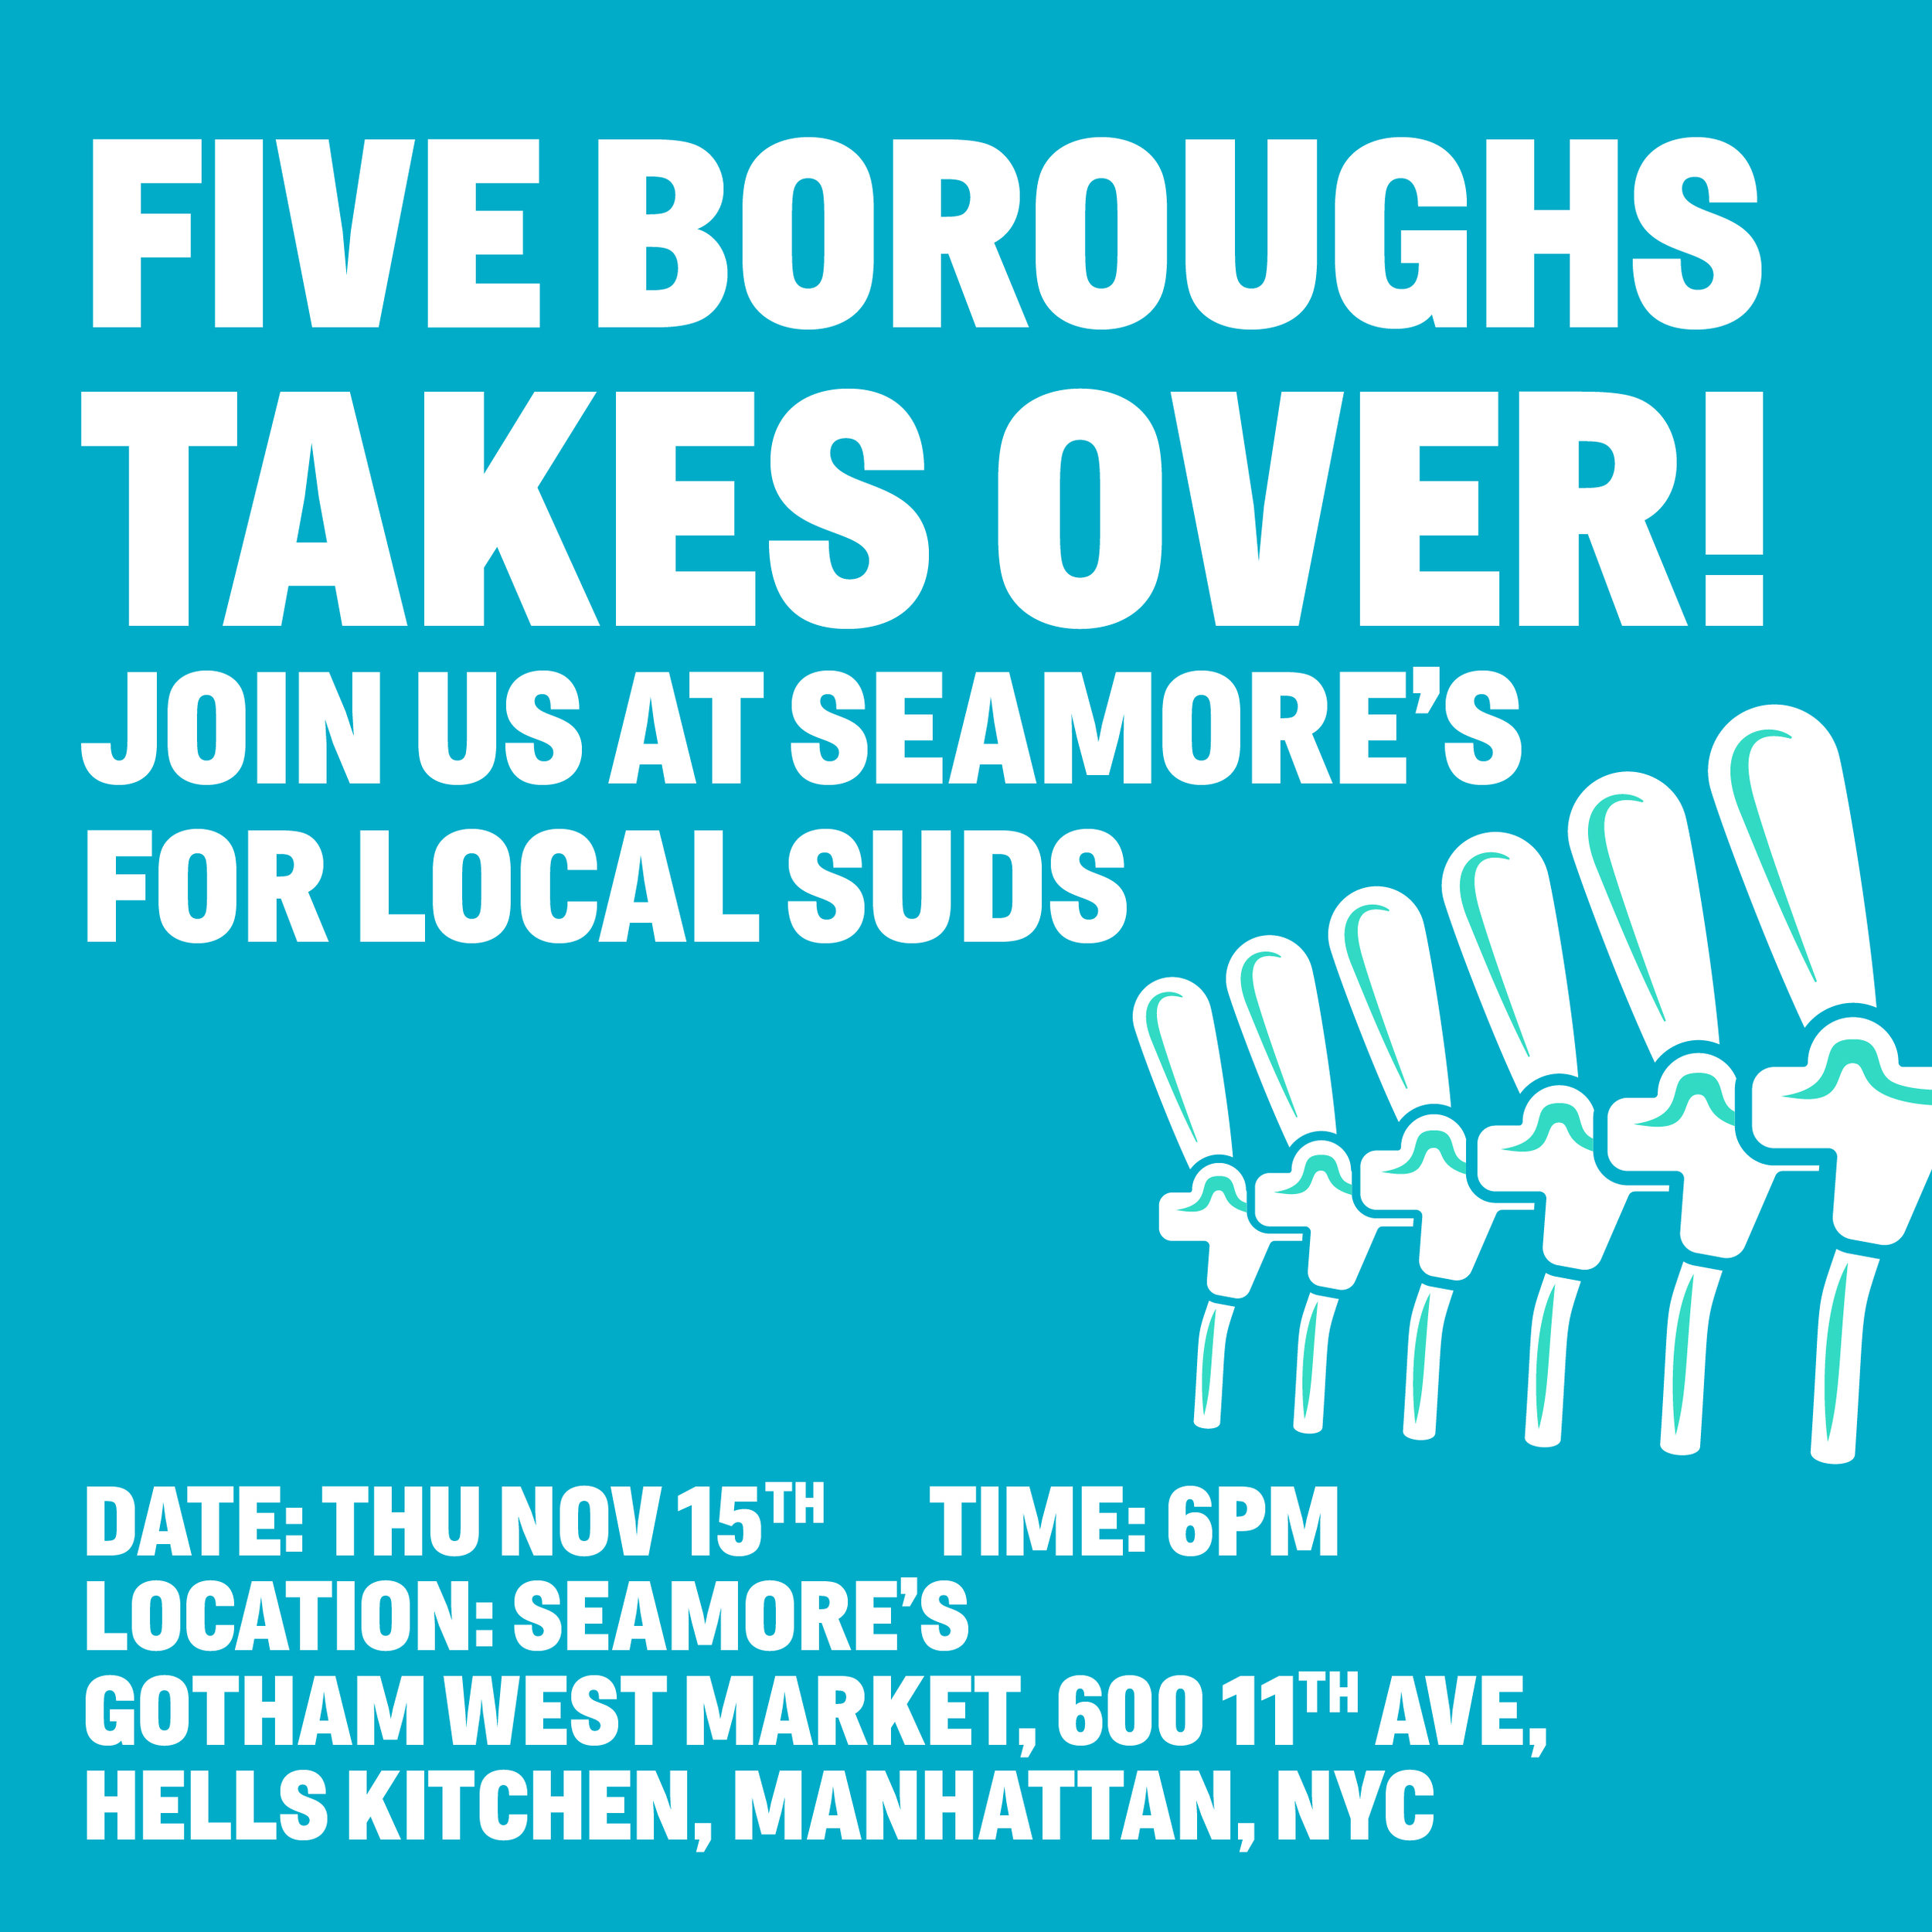 IG - Seamores GWM and Five Boroughs-01.jpg